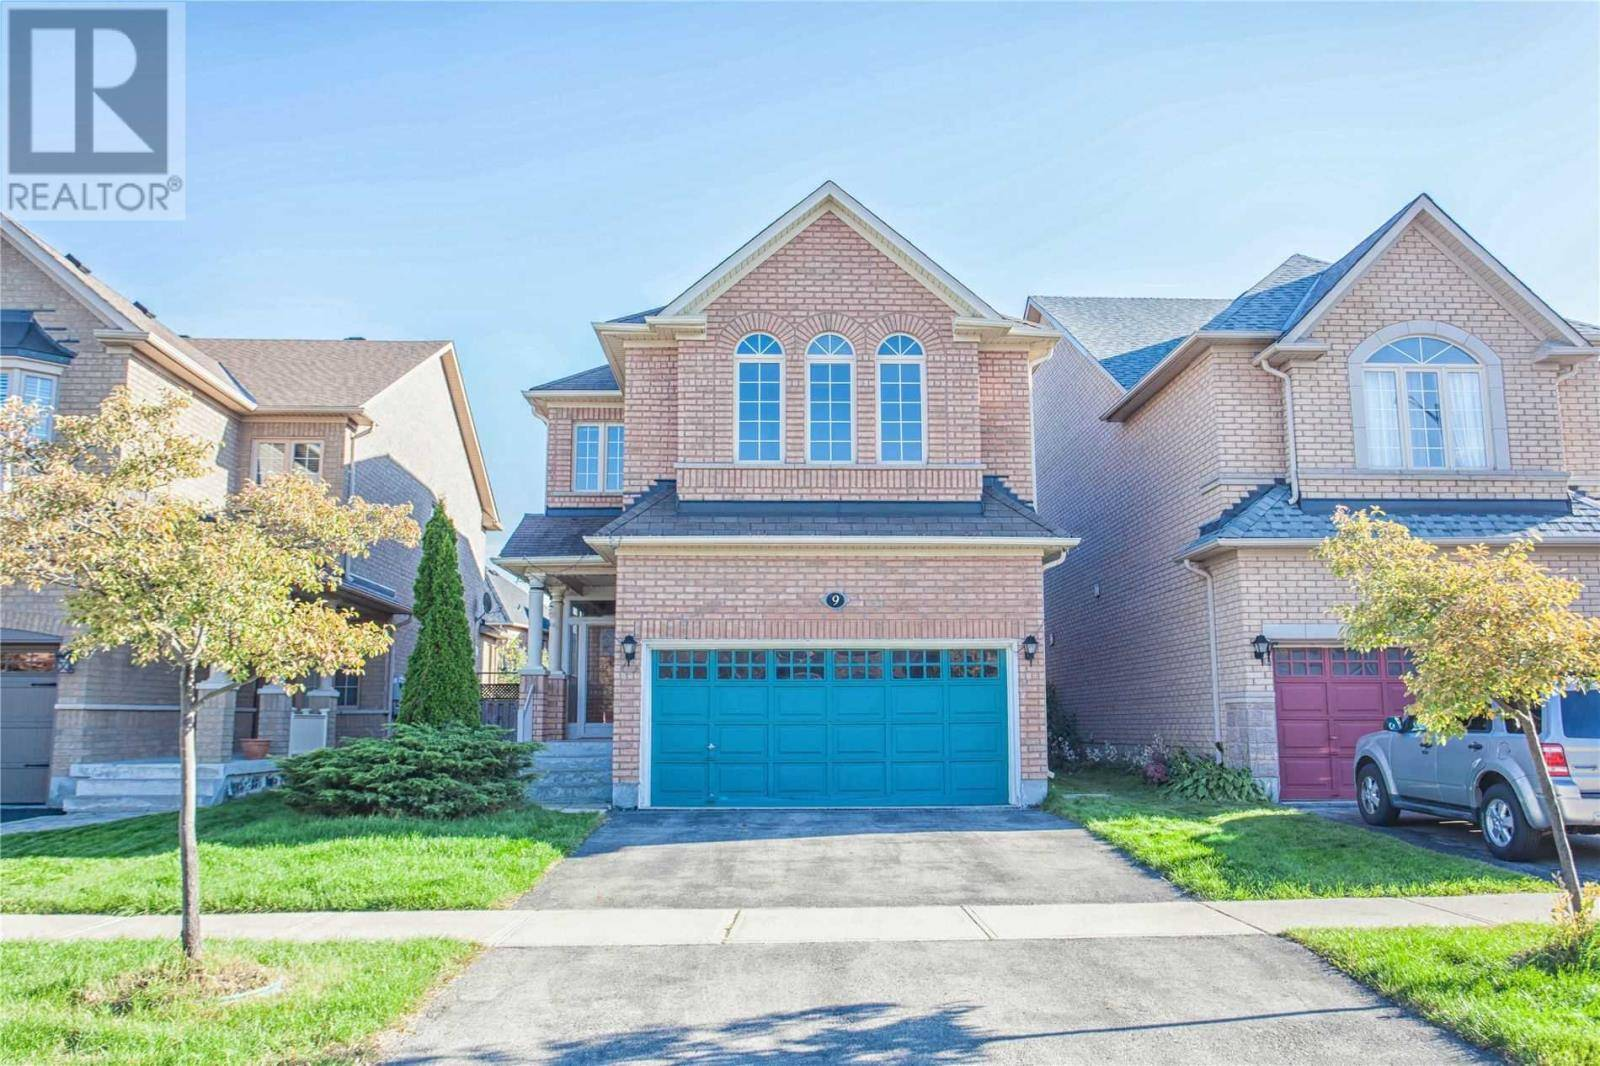 House for sale at 9 Remington Dr Richmond Hill Ontario - MLS: N4606089